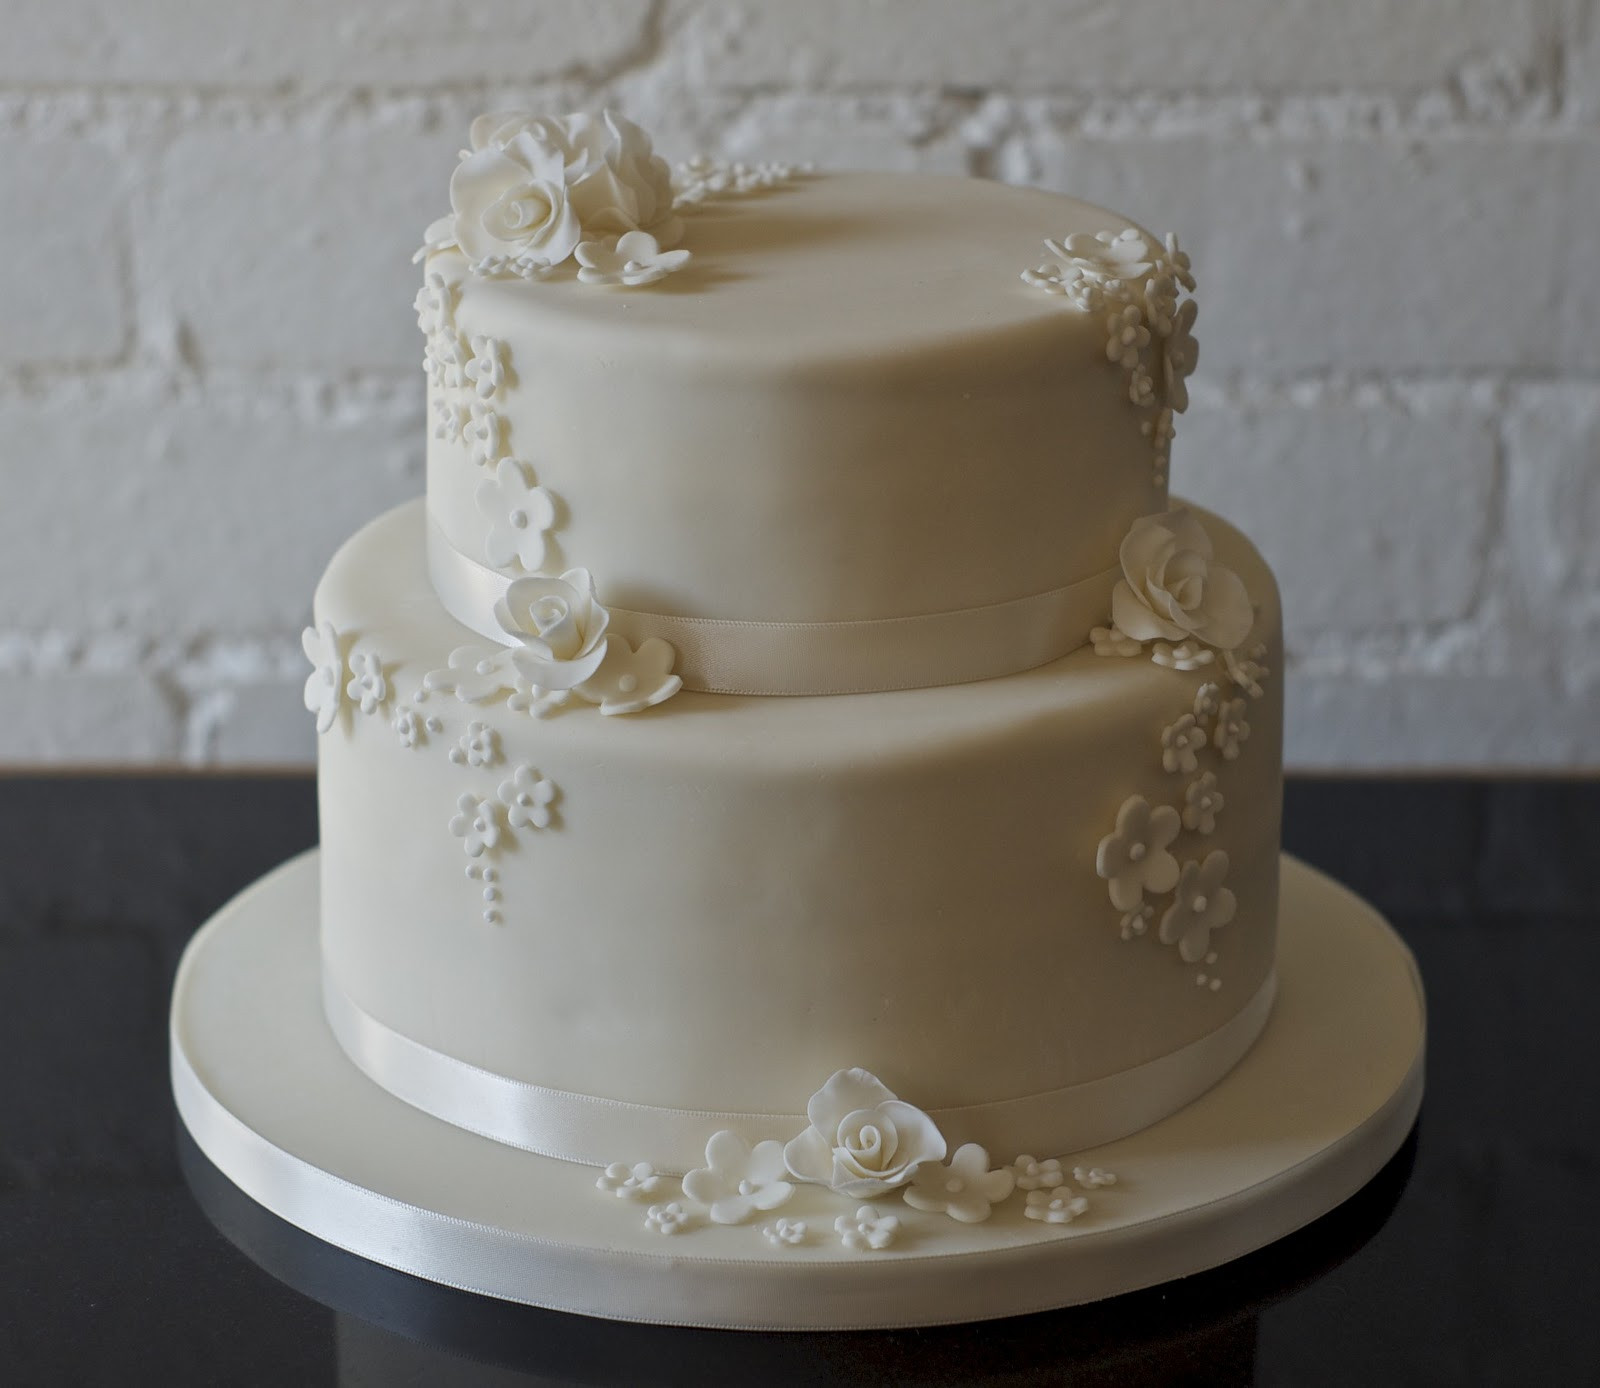 2 Tier Wedding Cakes  REAL LIFE Rose and blossom 2 tier wedding cake